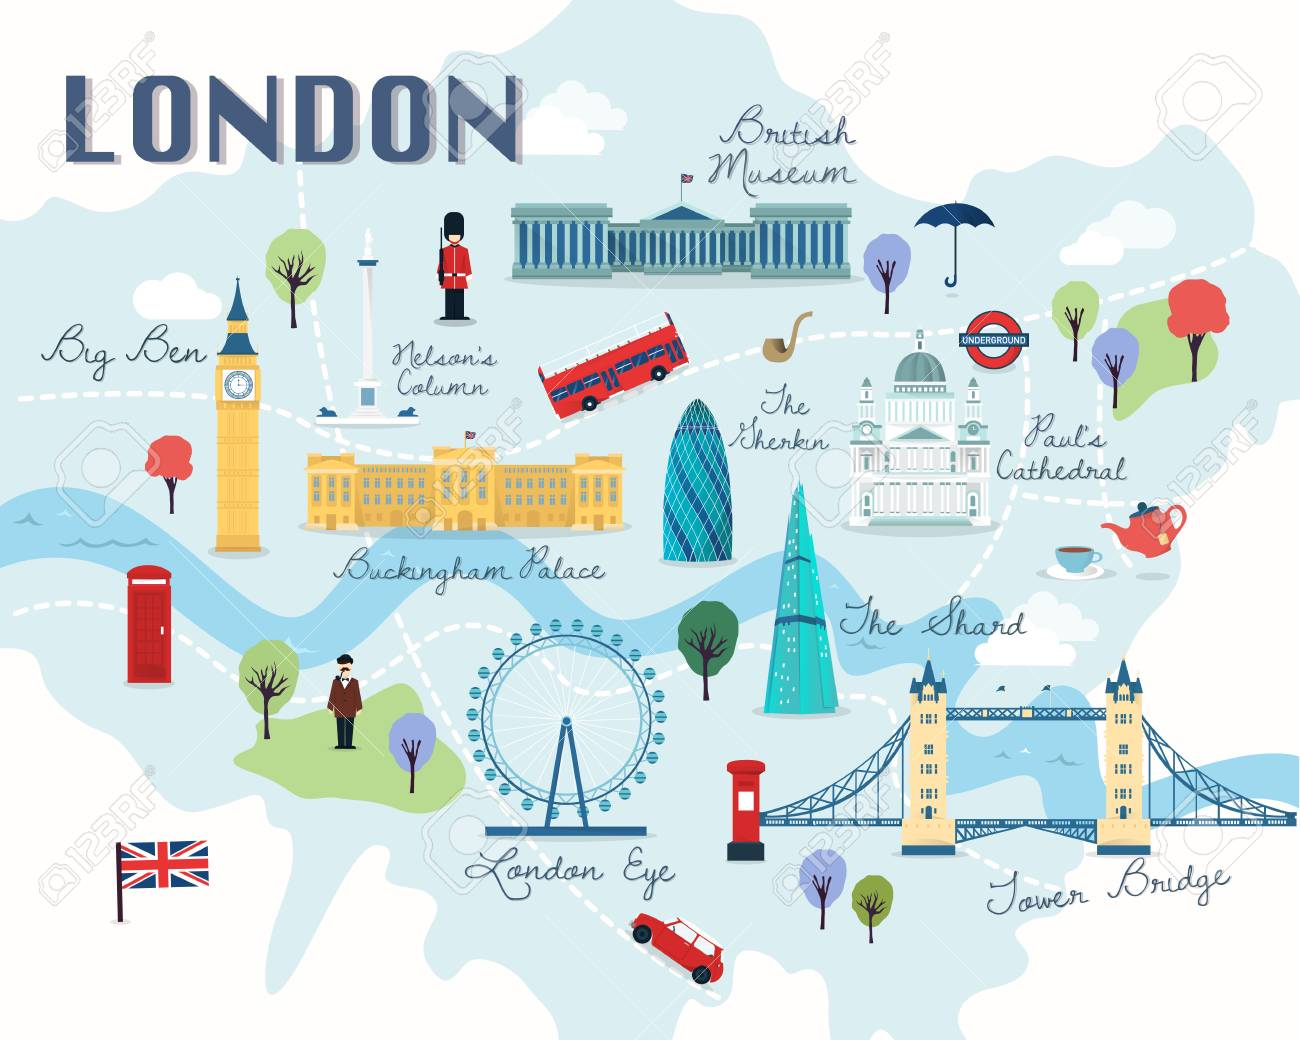 London Tourist Information Map.Map Of London Attractions Vector And Illustration